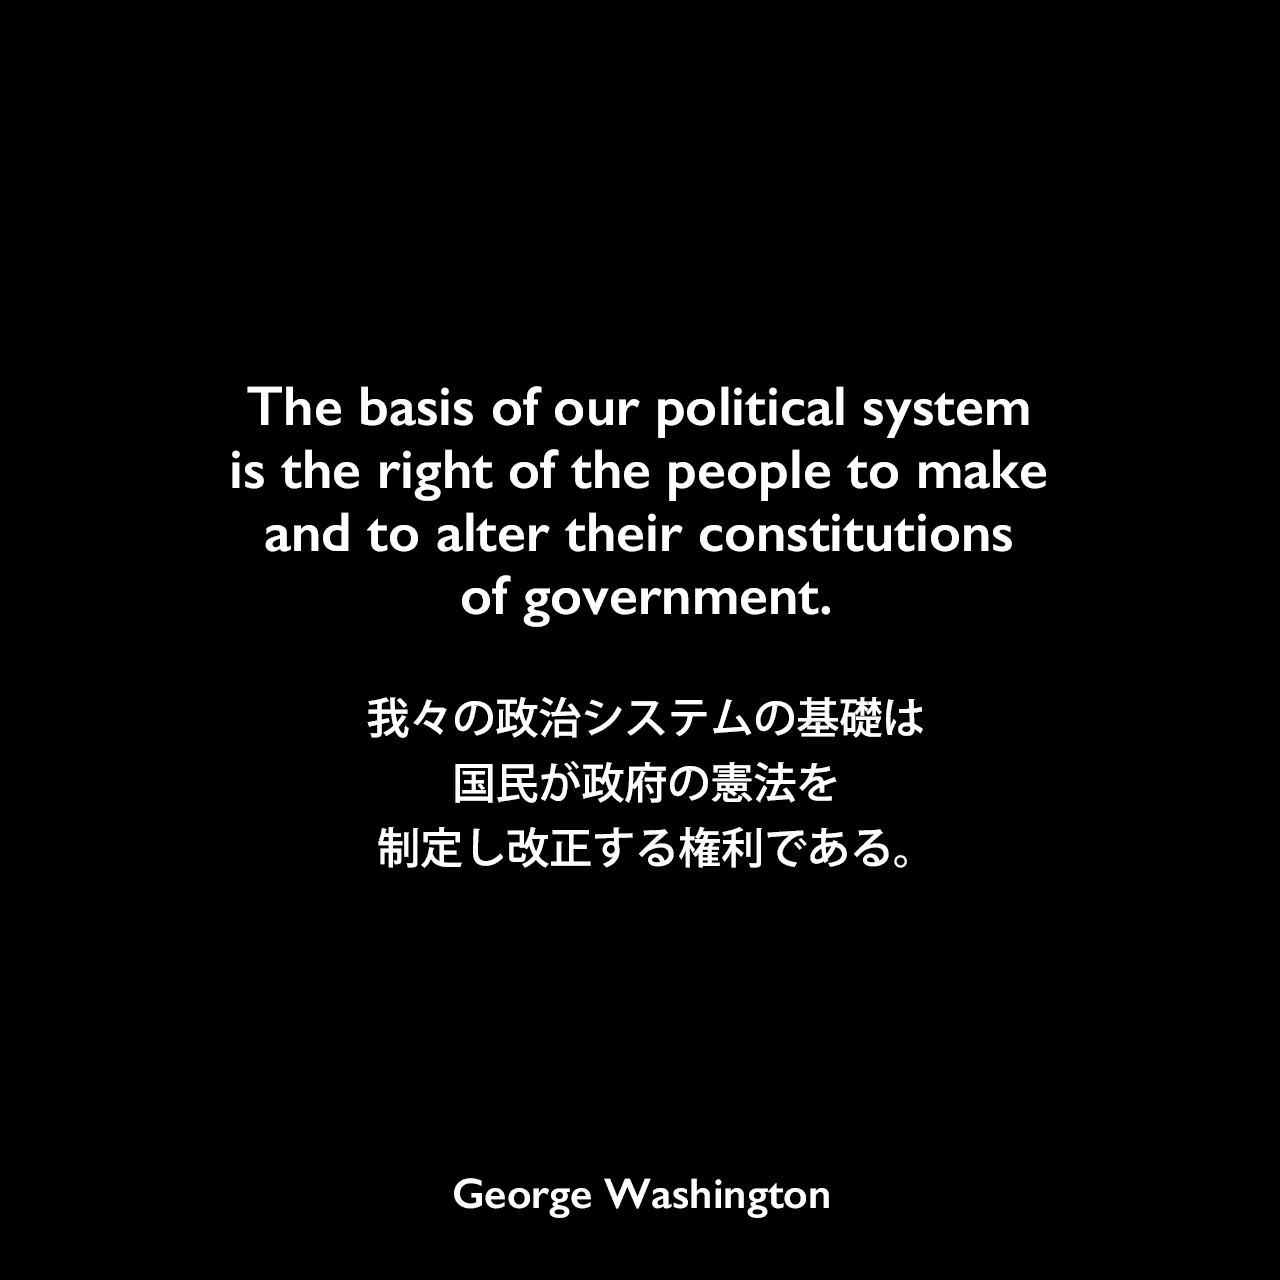 The basis of our political system is the right of the people to make and to alter their constitutions of government.我々の政治システムの基礎は、国民が政府の憲法を制定し改正する権利である。- 1796年の初代大統領退任挨拶よりGeorge Washington